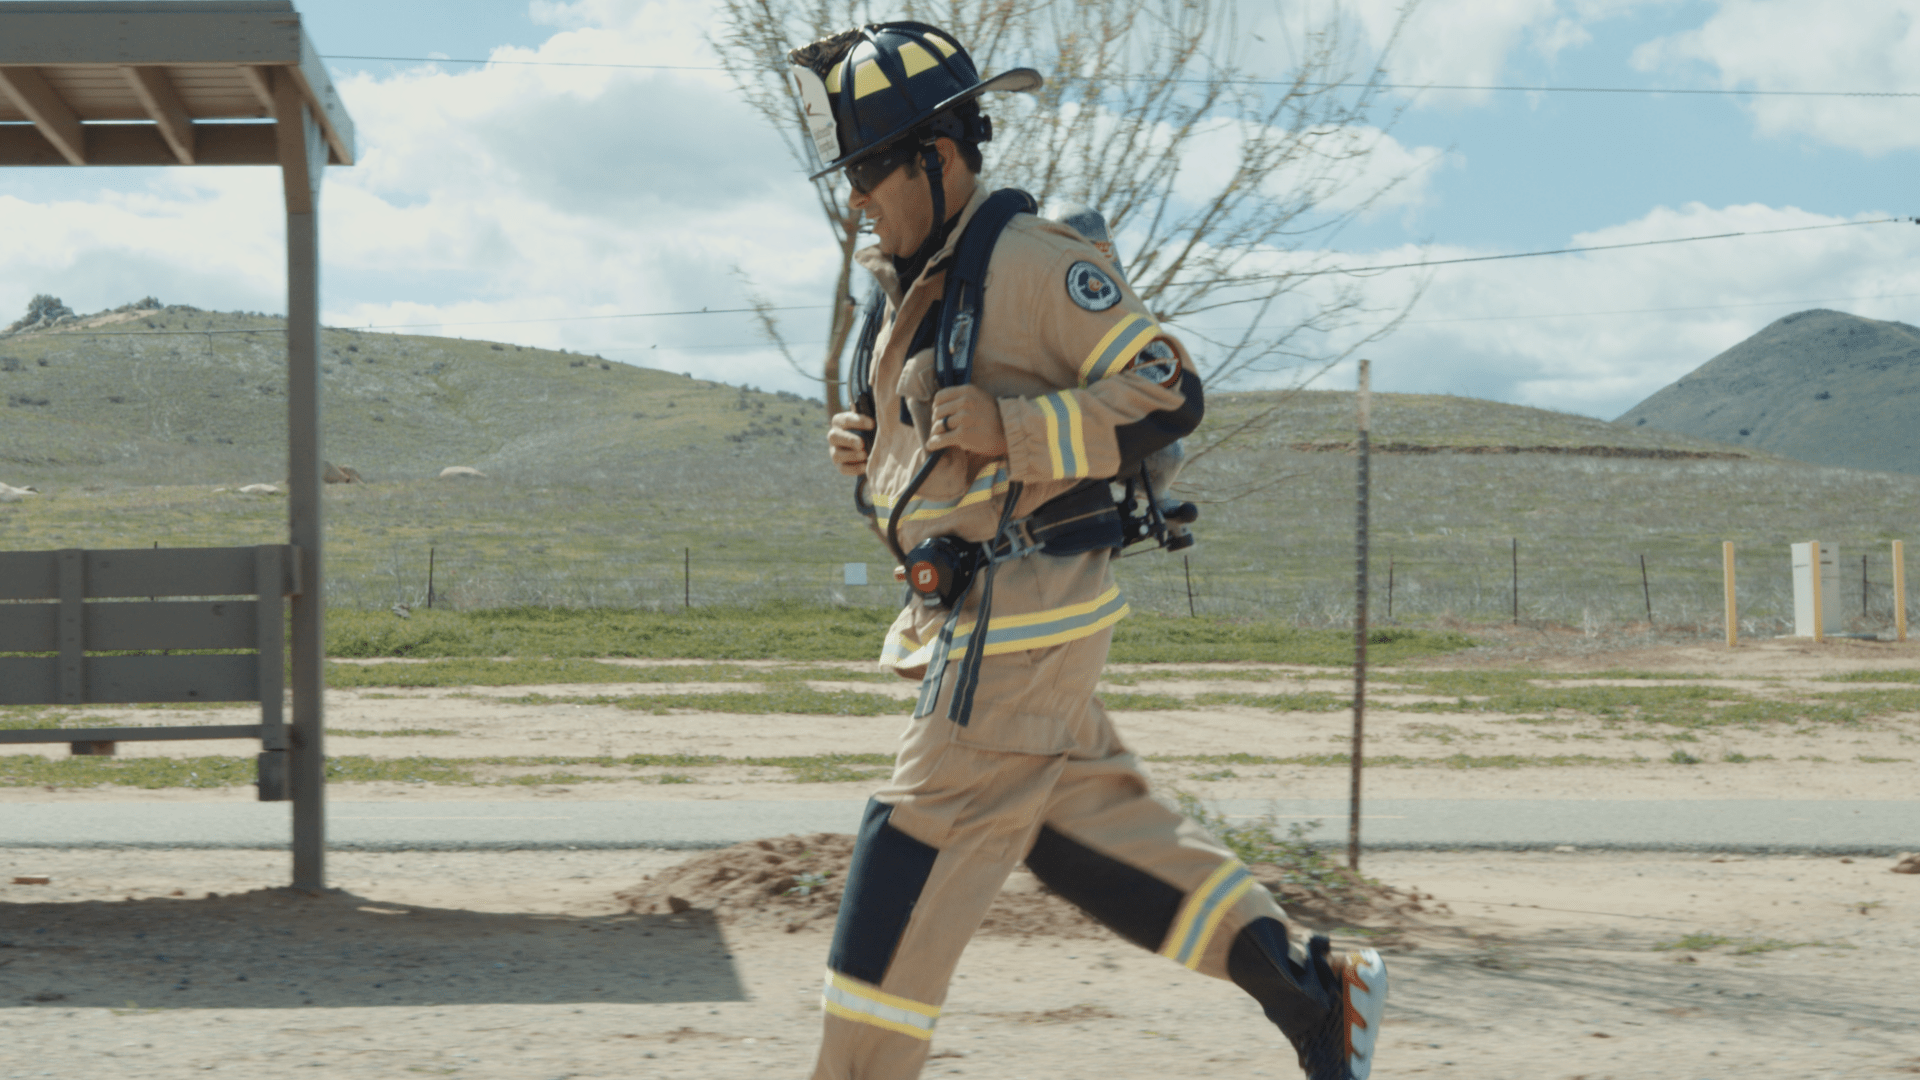 Jose Zambrano running in his firefighter gear.